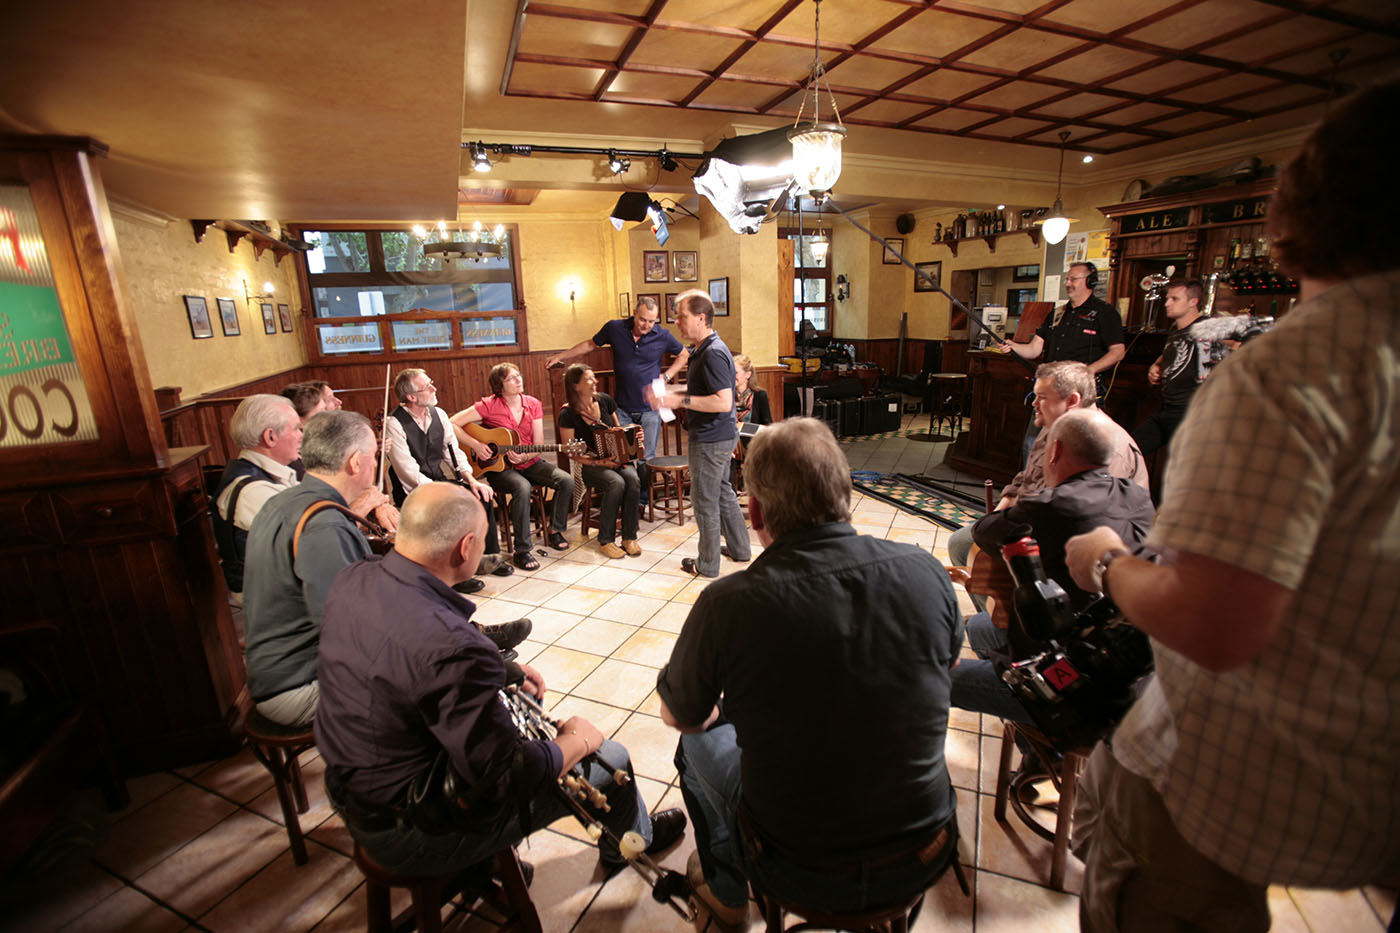 Musicians, Irish dancers and film crew on set in a pub. - click to view larger image